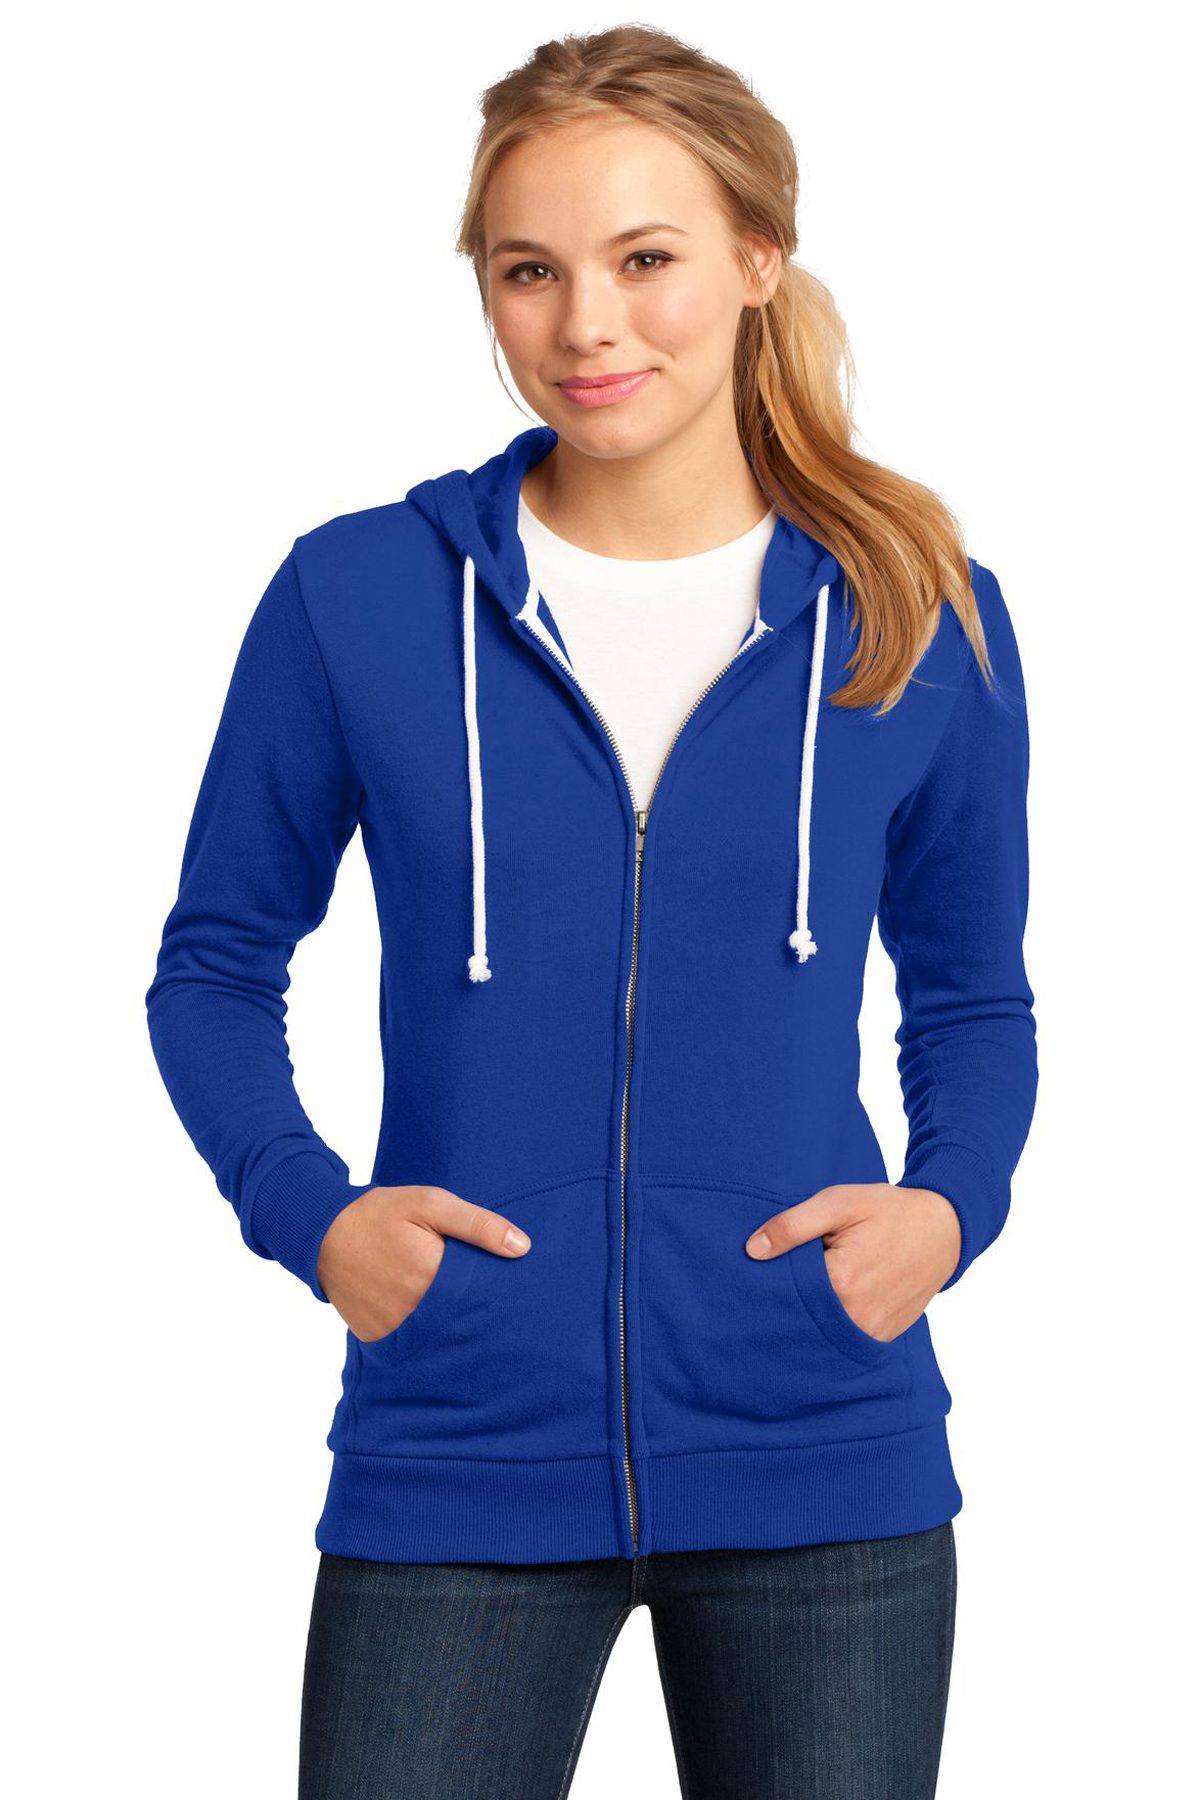 Sweatshirts-Fleece-Hooded-15